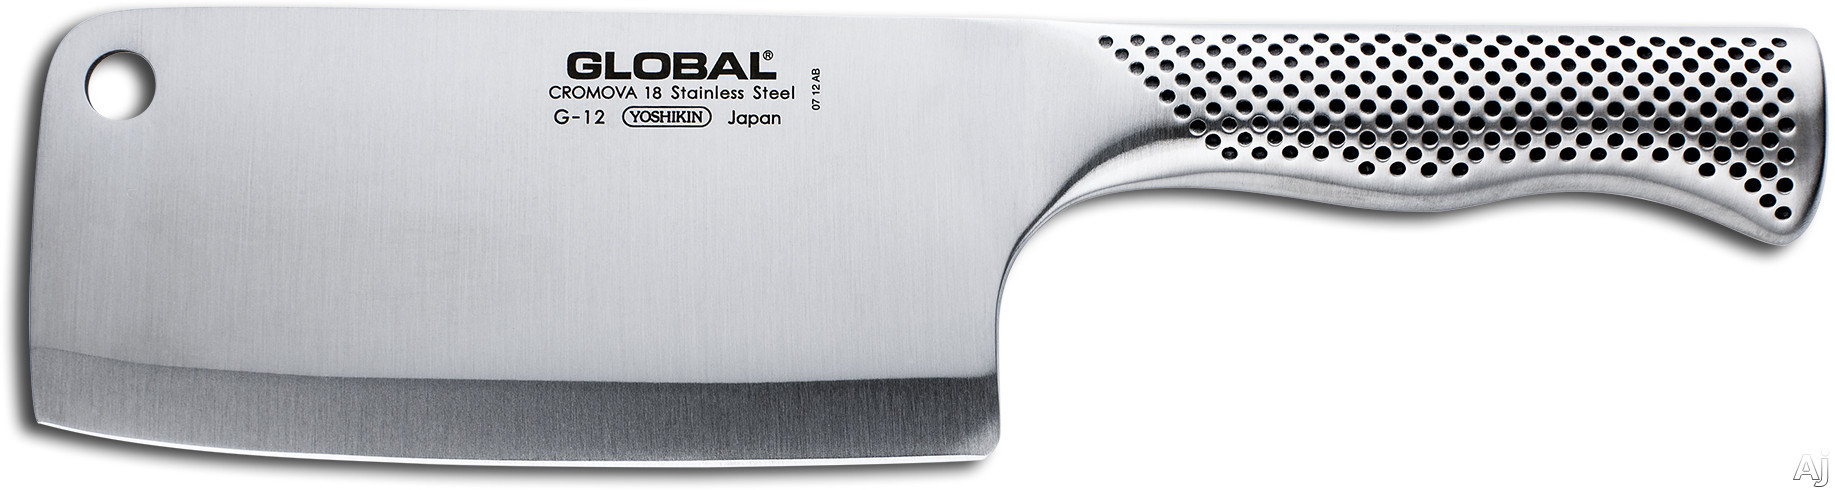 Global G12 6-1/4 Inch Meat Cleaver with Cromova Tempered Stainless Steel, Hollow Weighted Handle, Made in Japan, 2 Year Warranty and Hand Wash Only